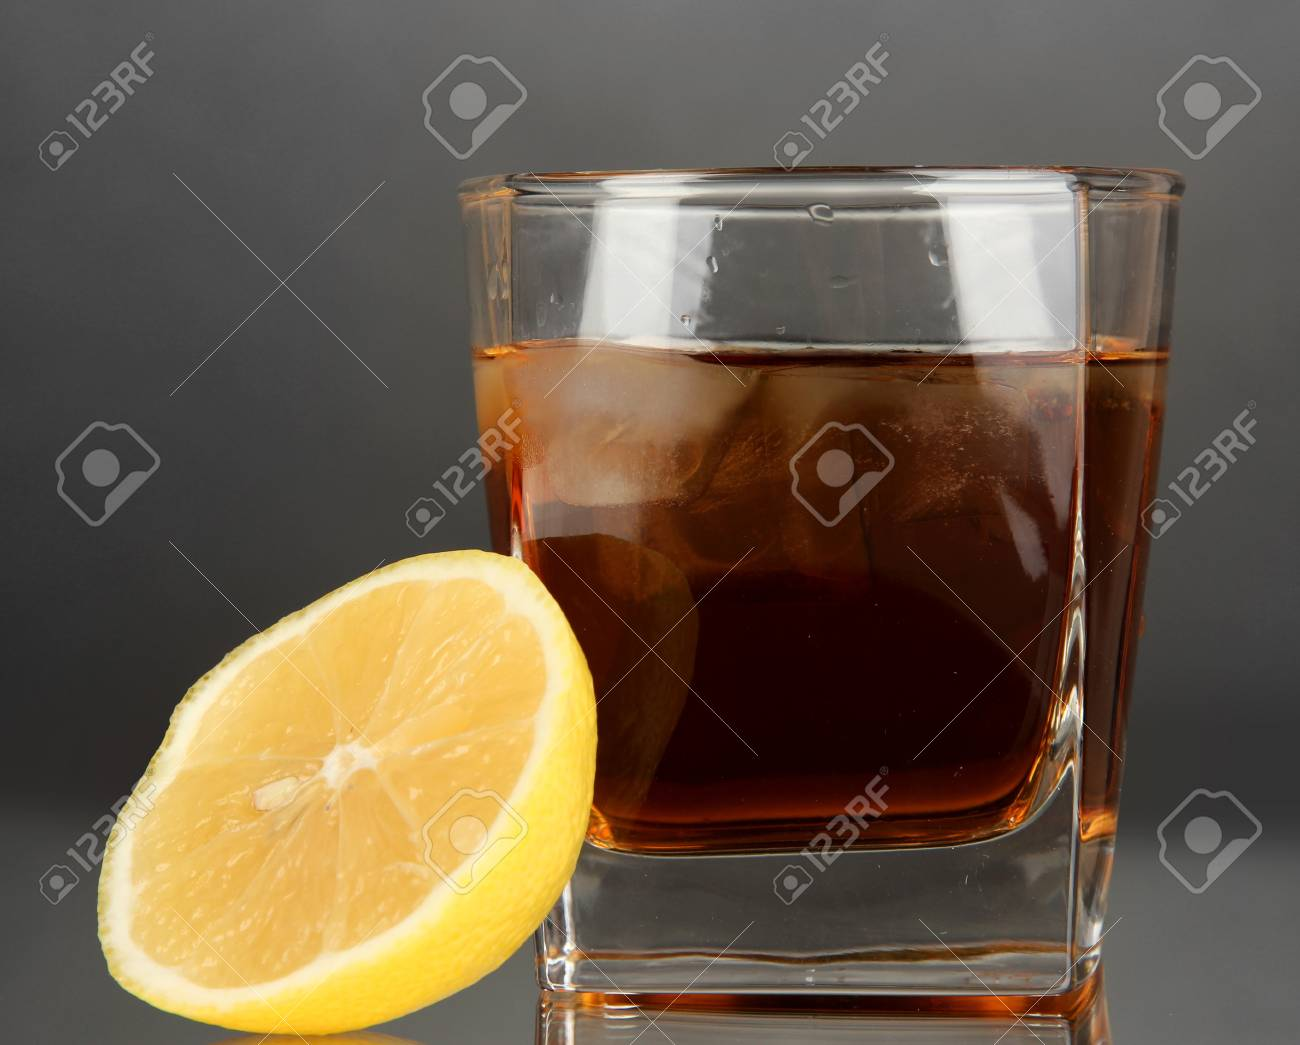 Glass of whiskey with ice and lemon on grey background Stock Photo - 17140742